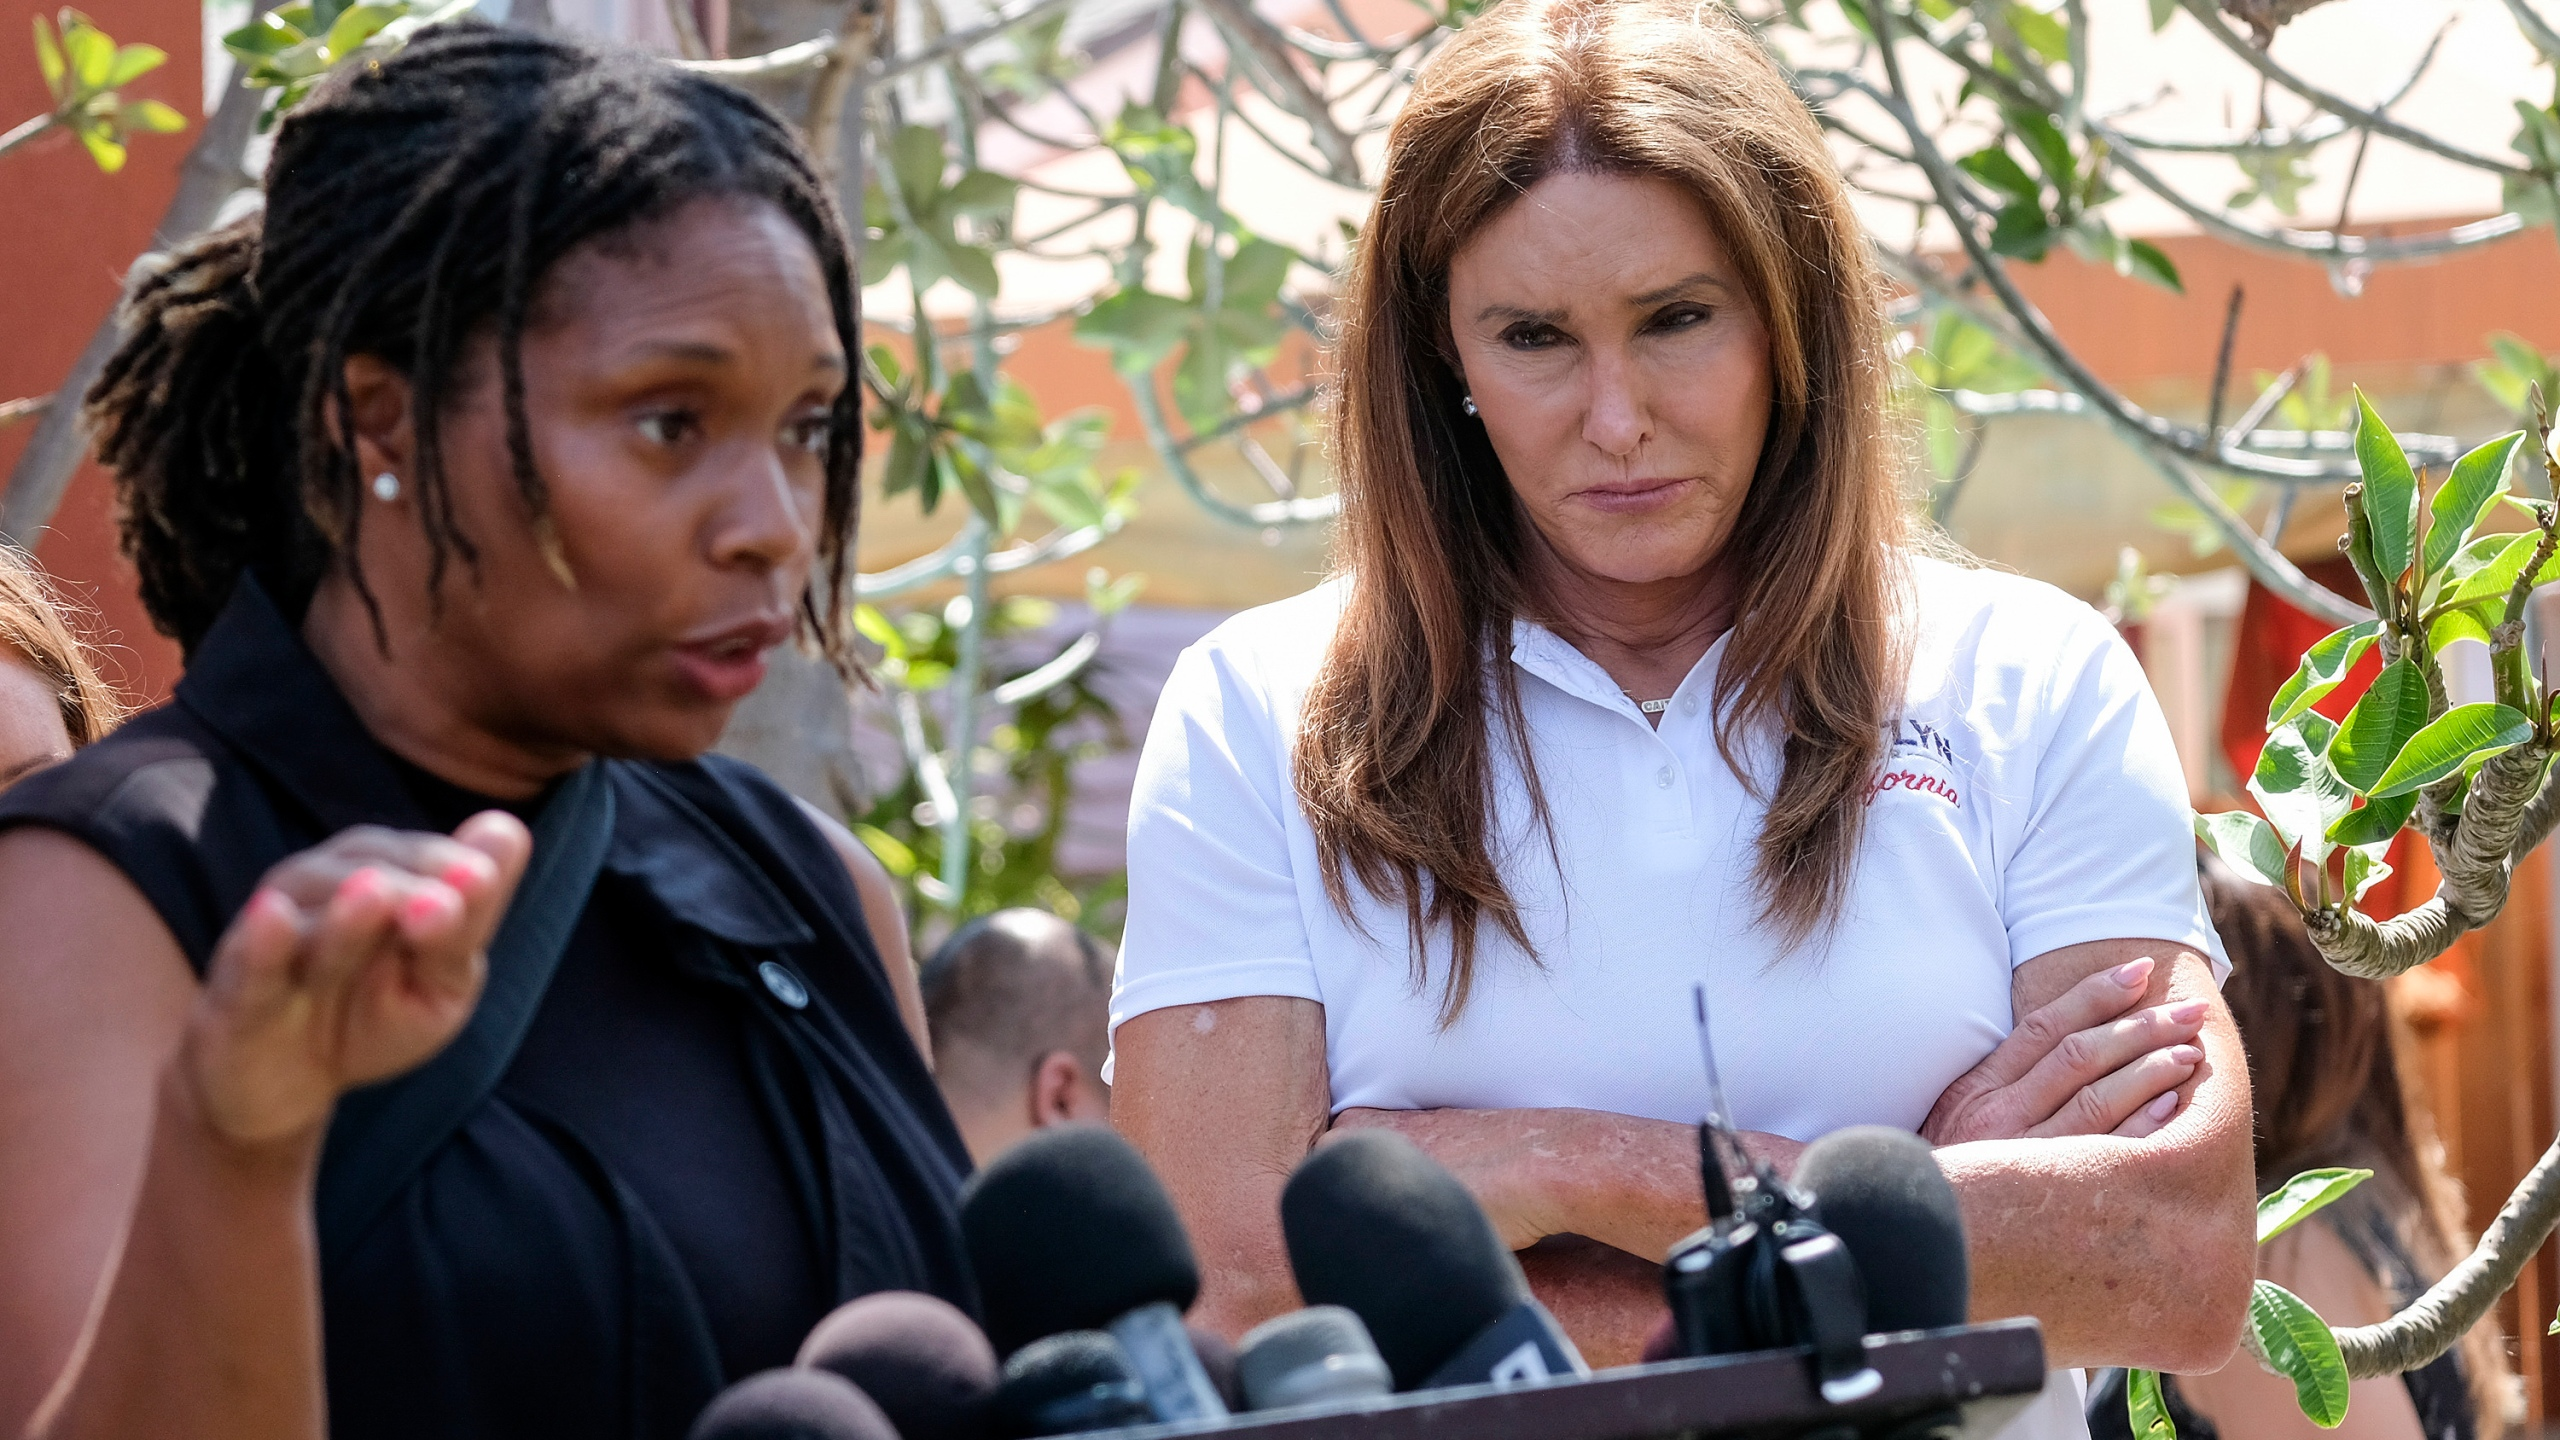 Caitlyn Jenner, right, a Republican candidate for California governor, looks on as Chie Lunn speaks during a news conference in the Venice Beach section of Los Angeles, Aug. 12, 2021. (AP Photo/Ringo H.W. Chiu)